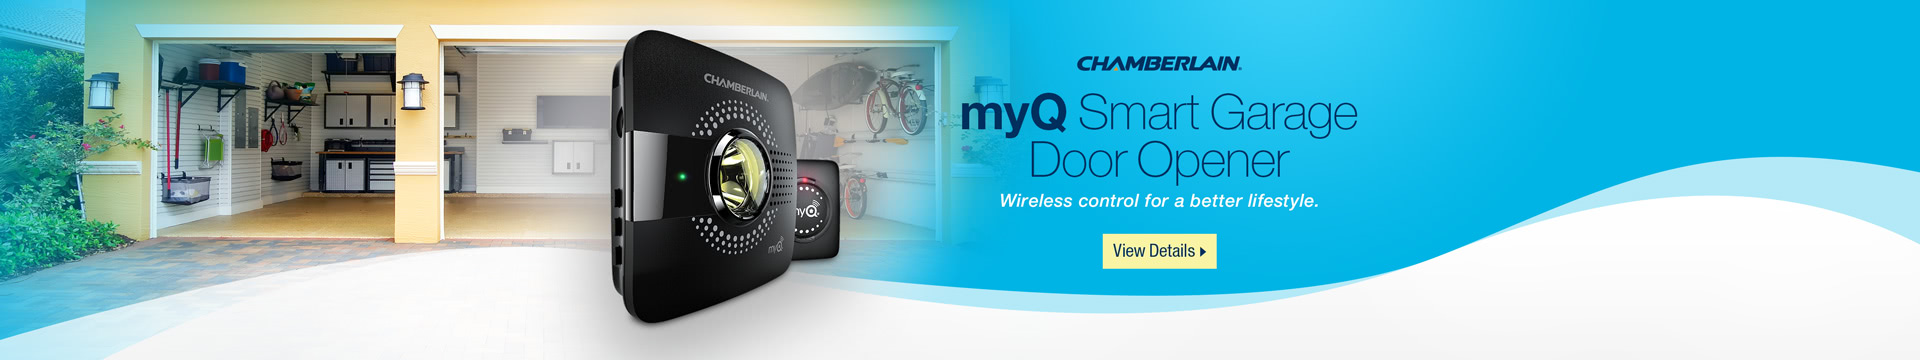 Smart Garage Door Opener Wireless control for a better lifestyle